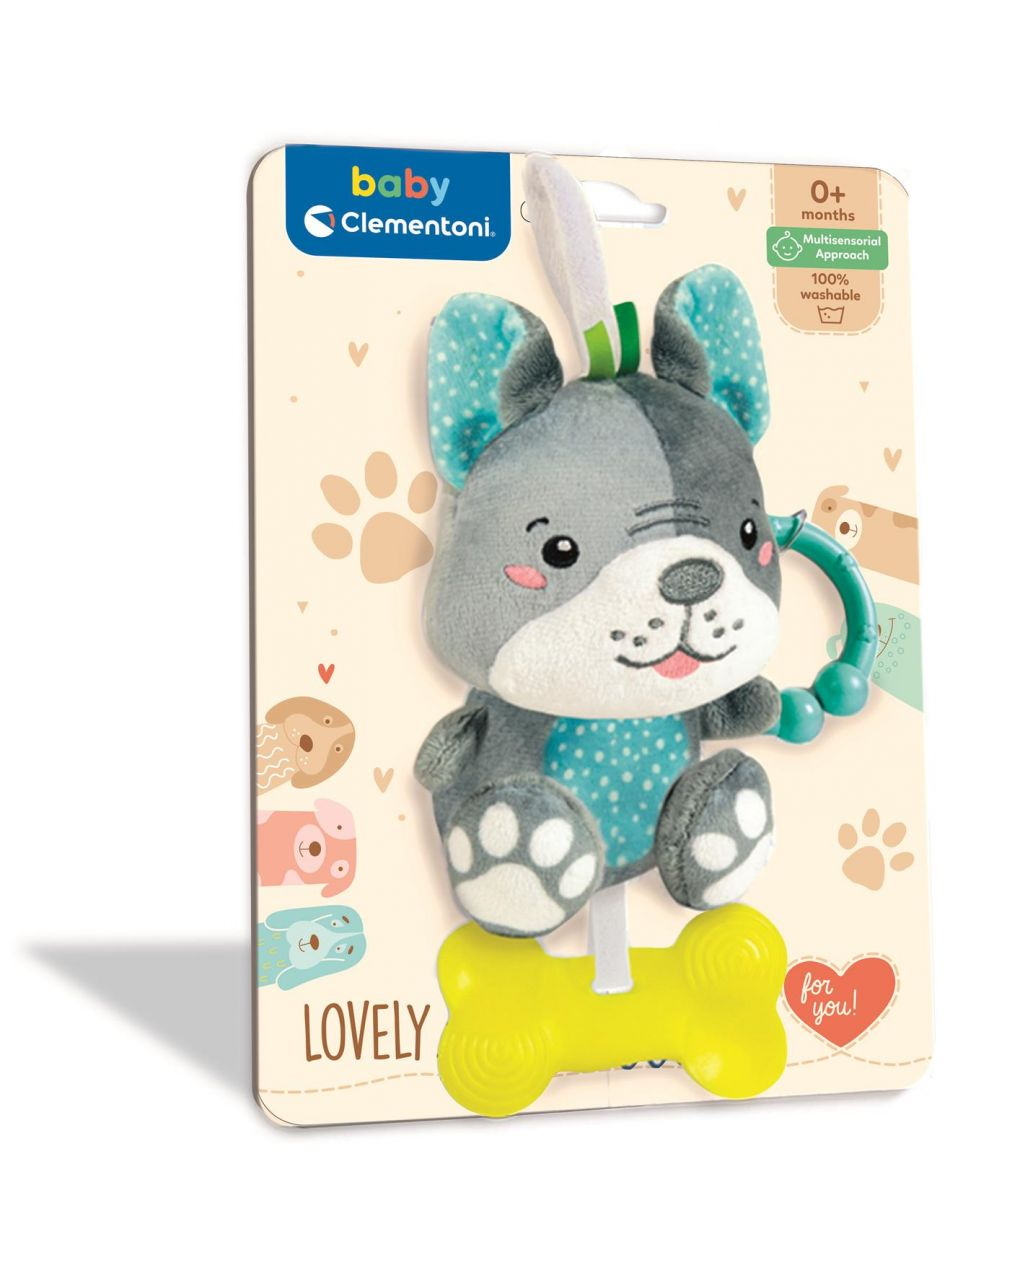 Baby clementoni - lovely dog rattle - Clementoni